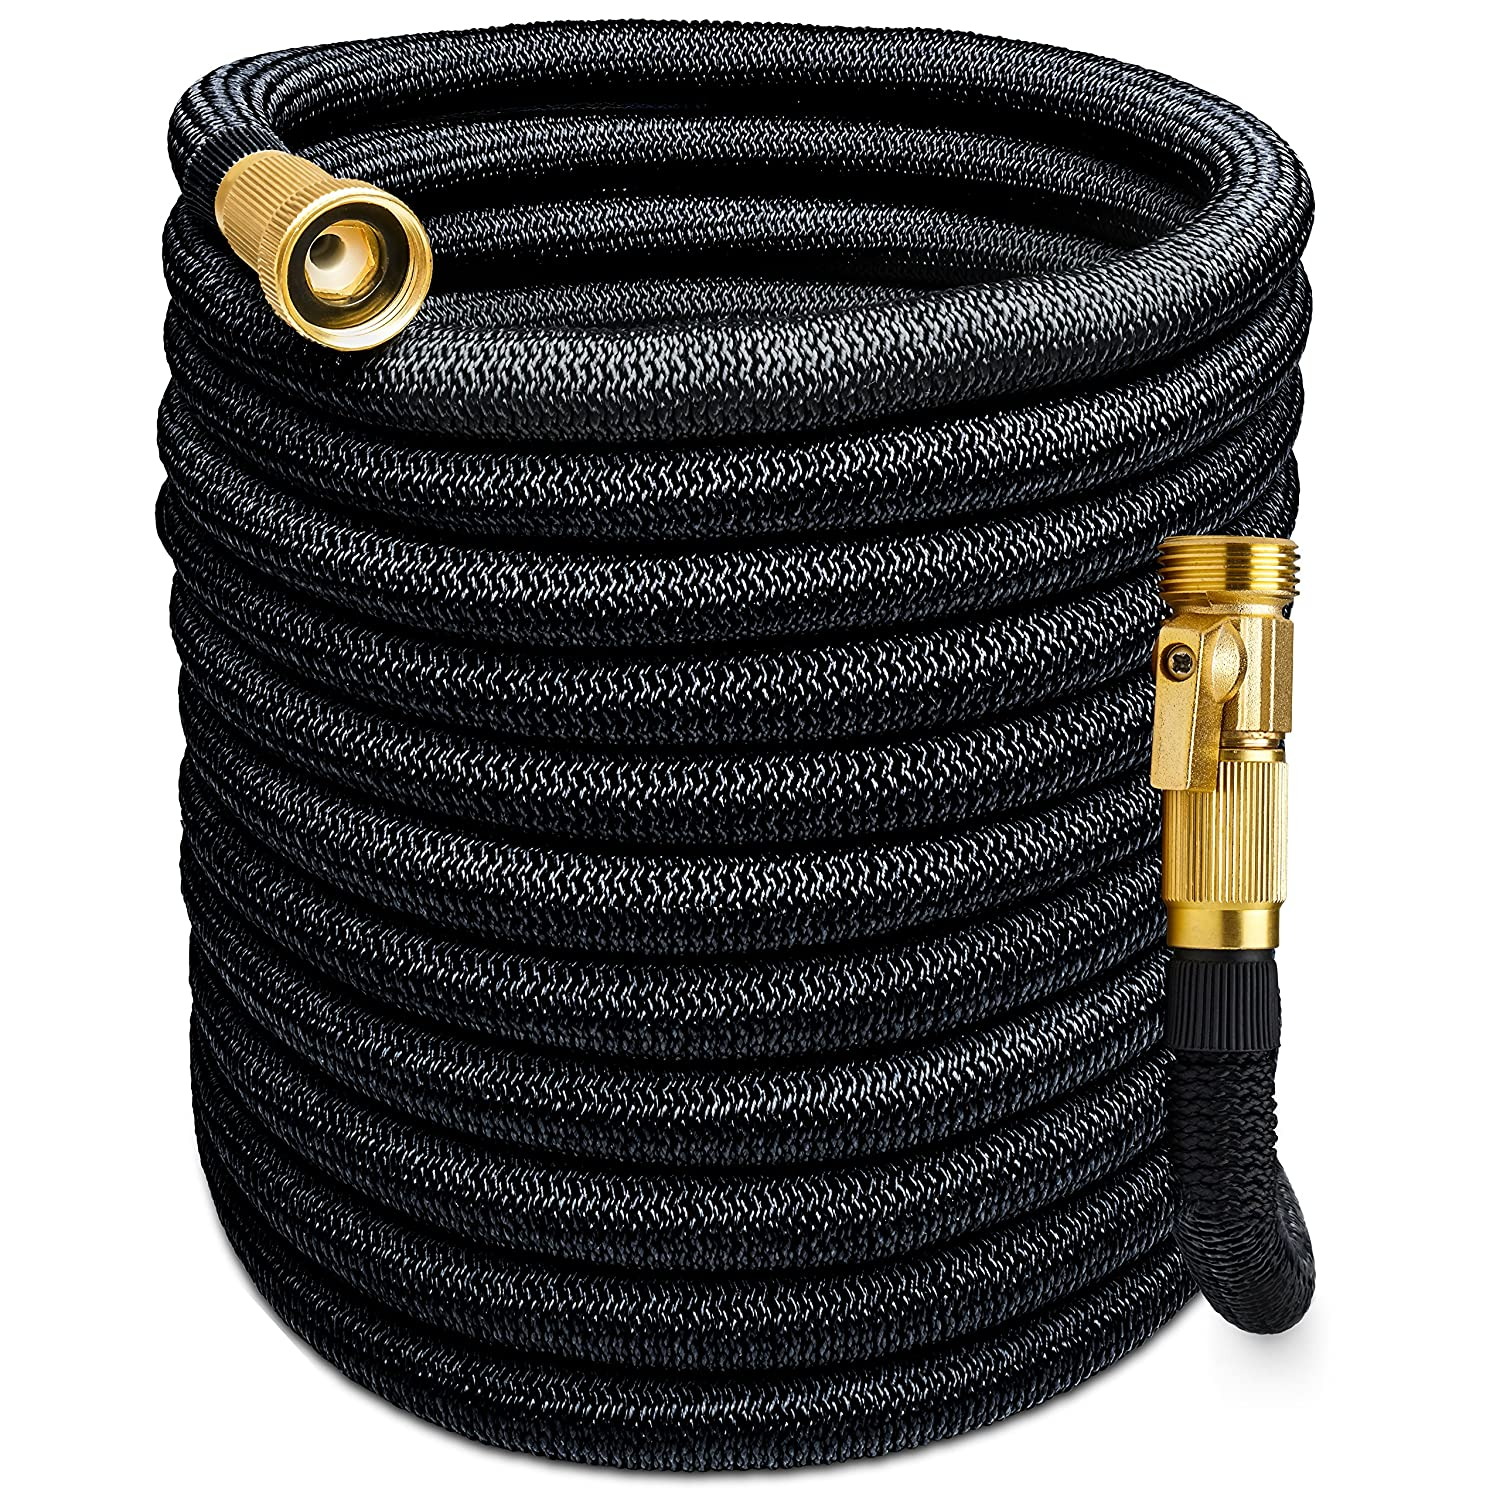 Morvat Expandable Garden Hose | Retractable Hose, Coil Hose, Collapsible Hose | Premium Super Strength Fabric 5500D | All Brass Connection with Built-In Quick Shut-Off Valve for Extra Convenience, 150